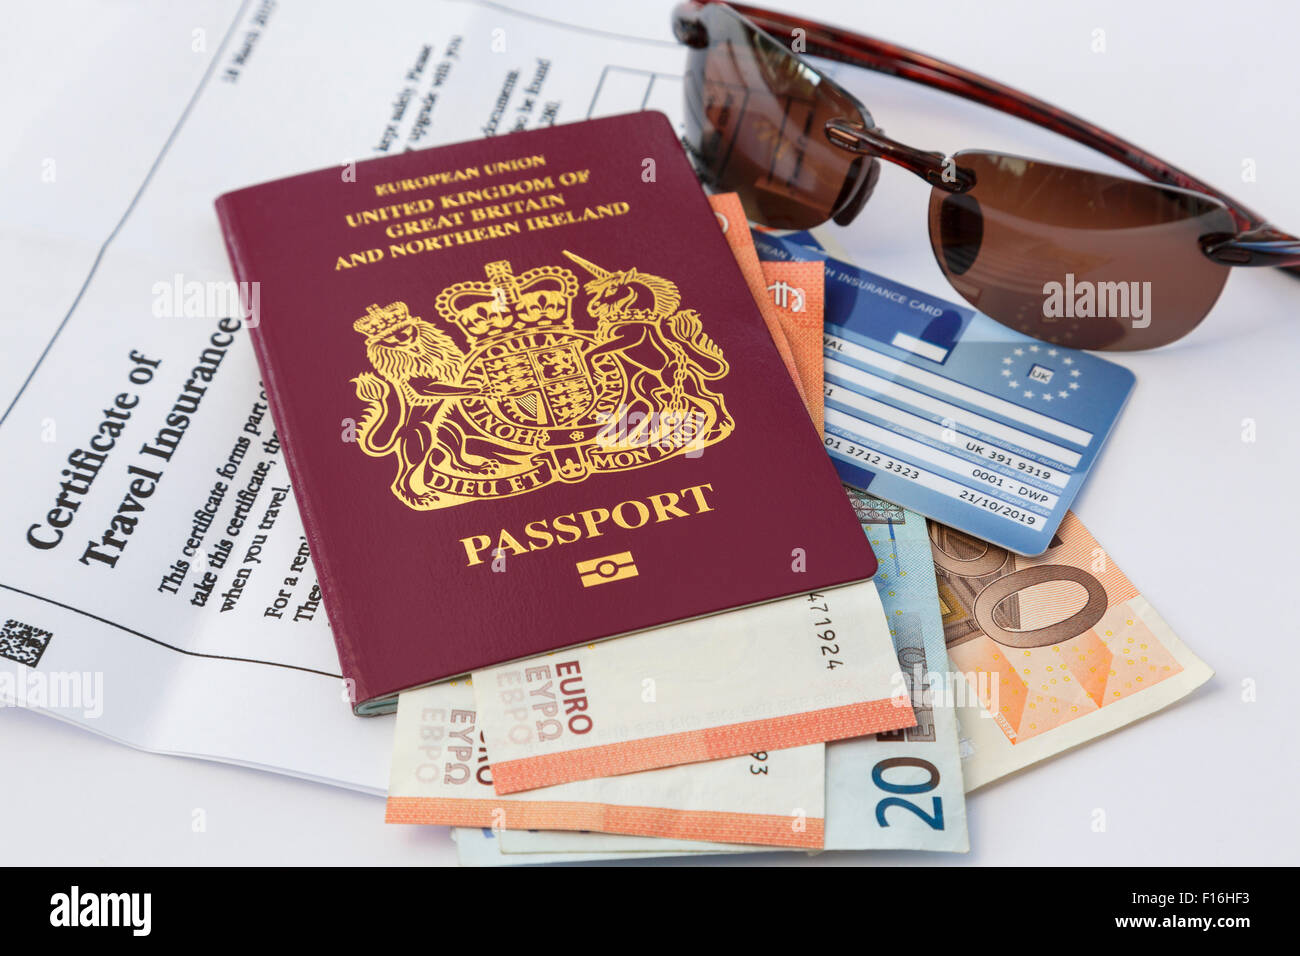 Travel things passport insurance documents and currency money EHIC card and sunglasses for travelling to Eurozone - Stock Image